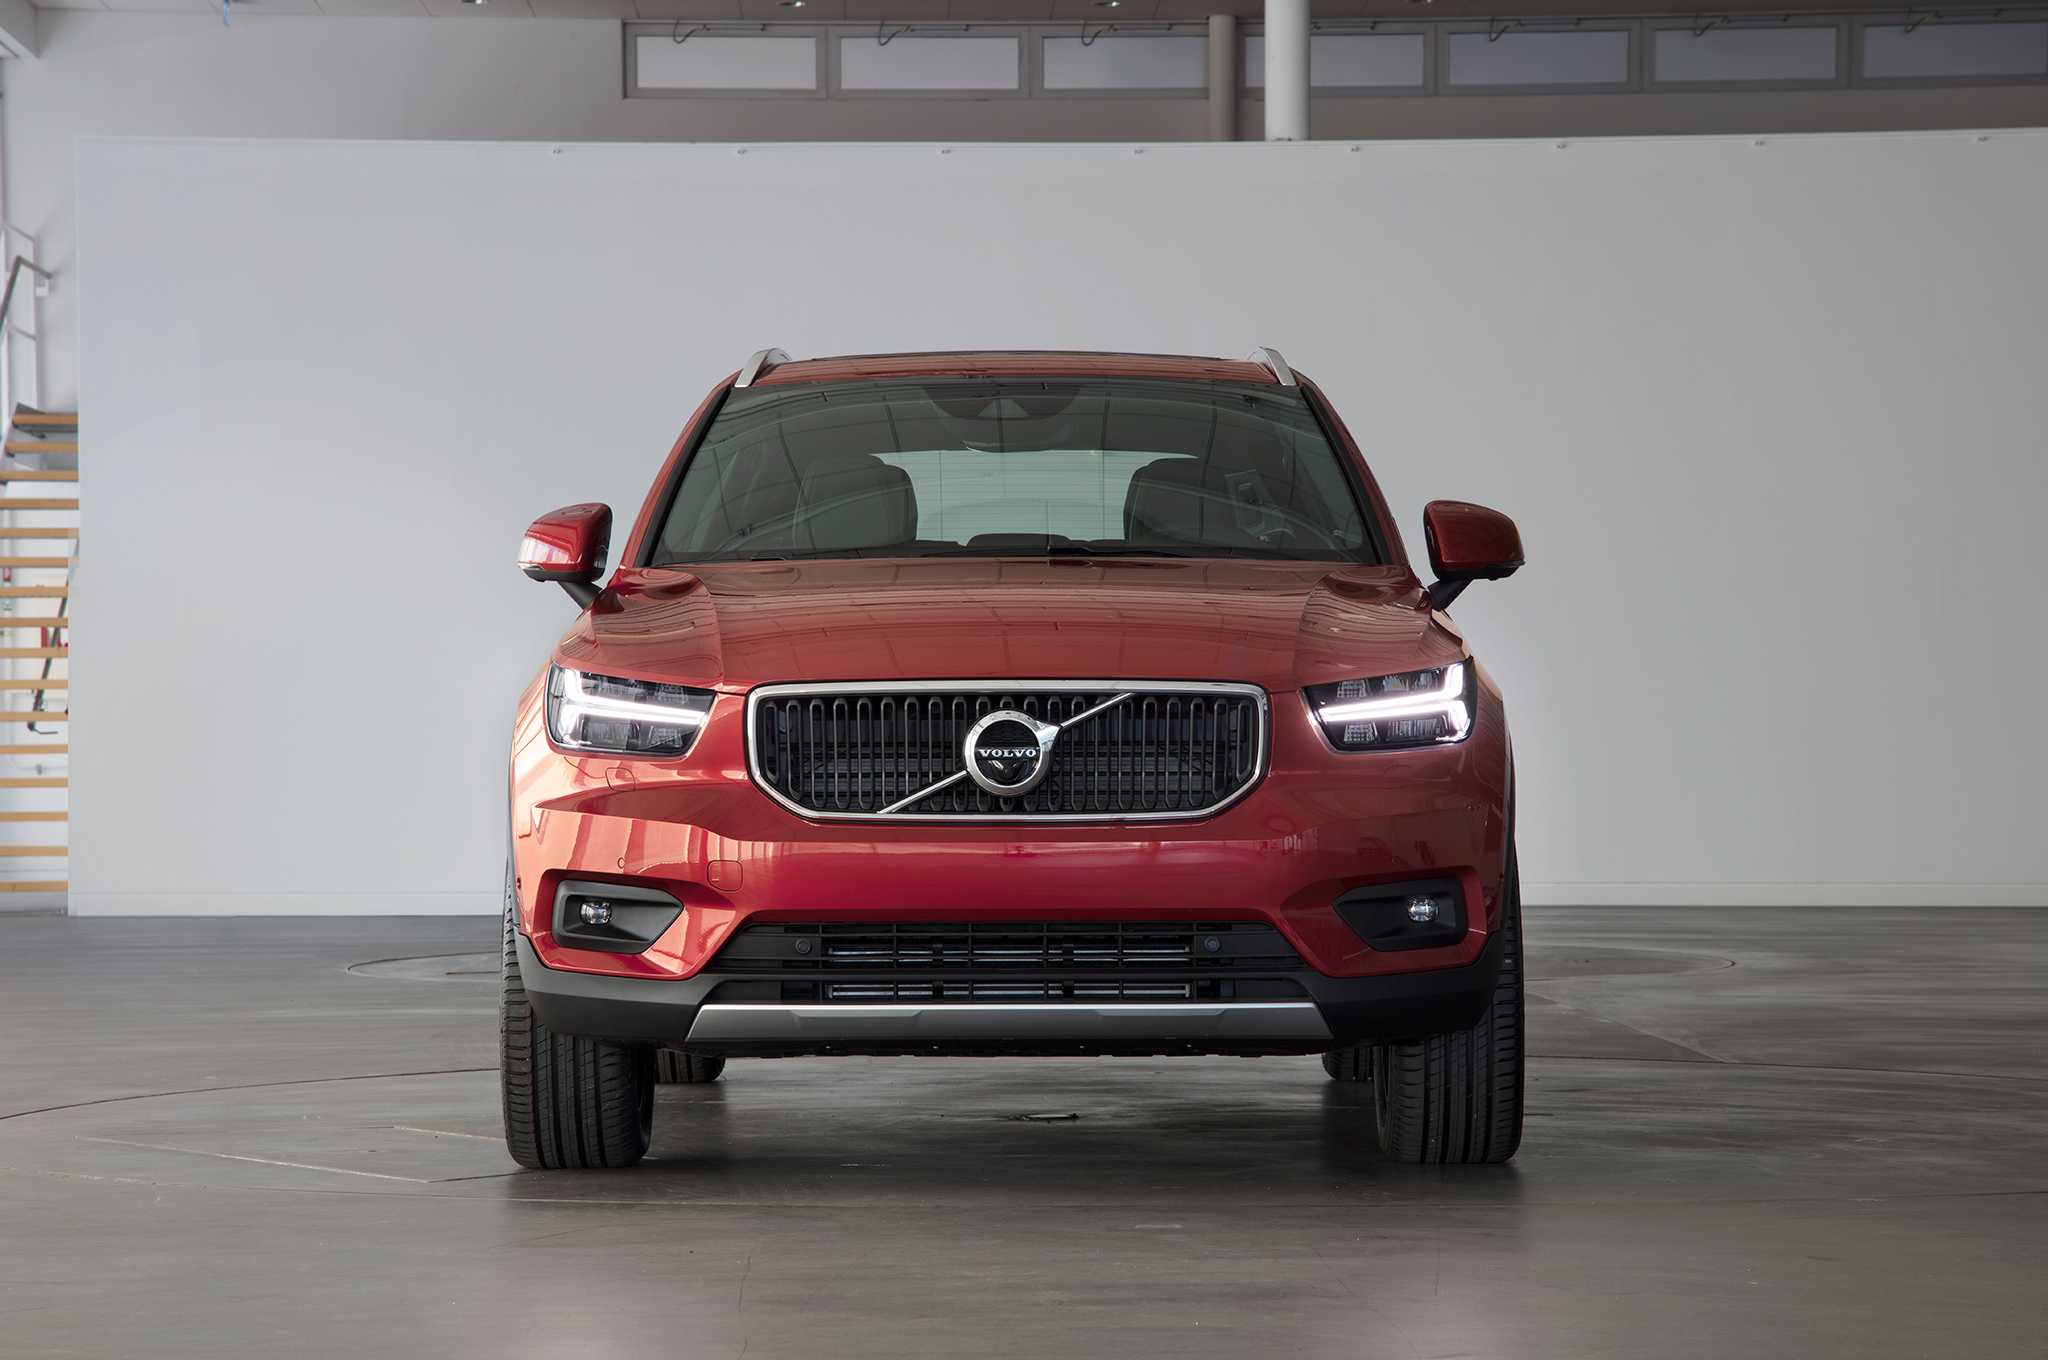 2019 volvo xc40 swedish style and substance in a small suv. Black Bedroom Furniture Sets. Home Design Ideas